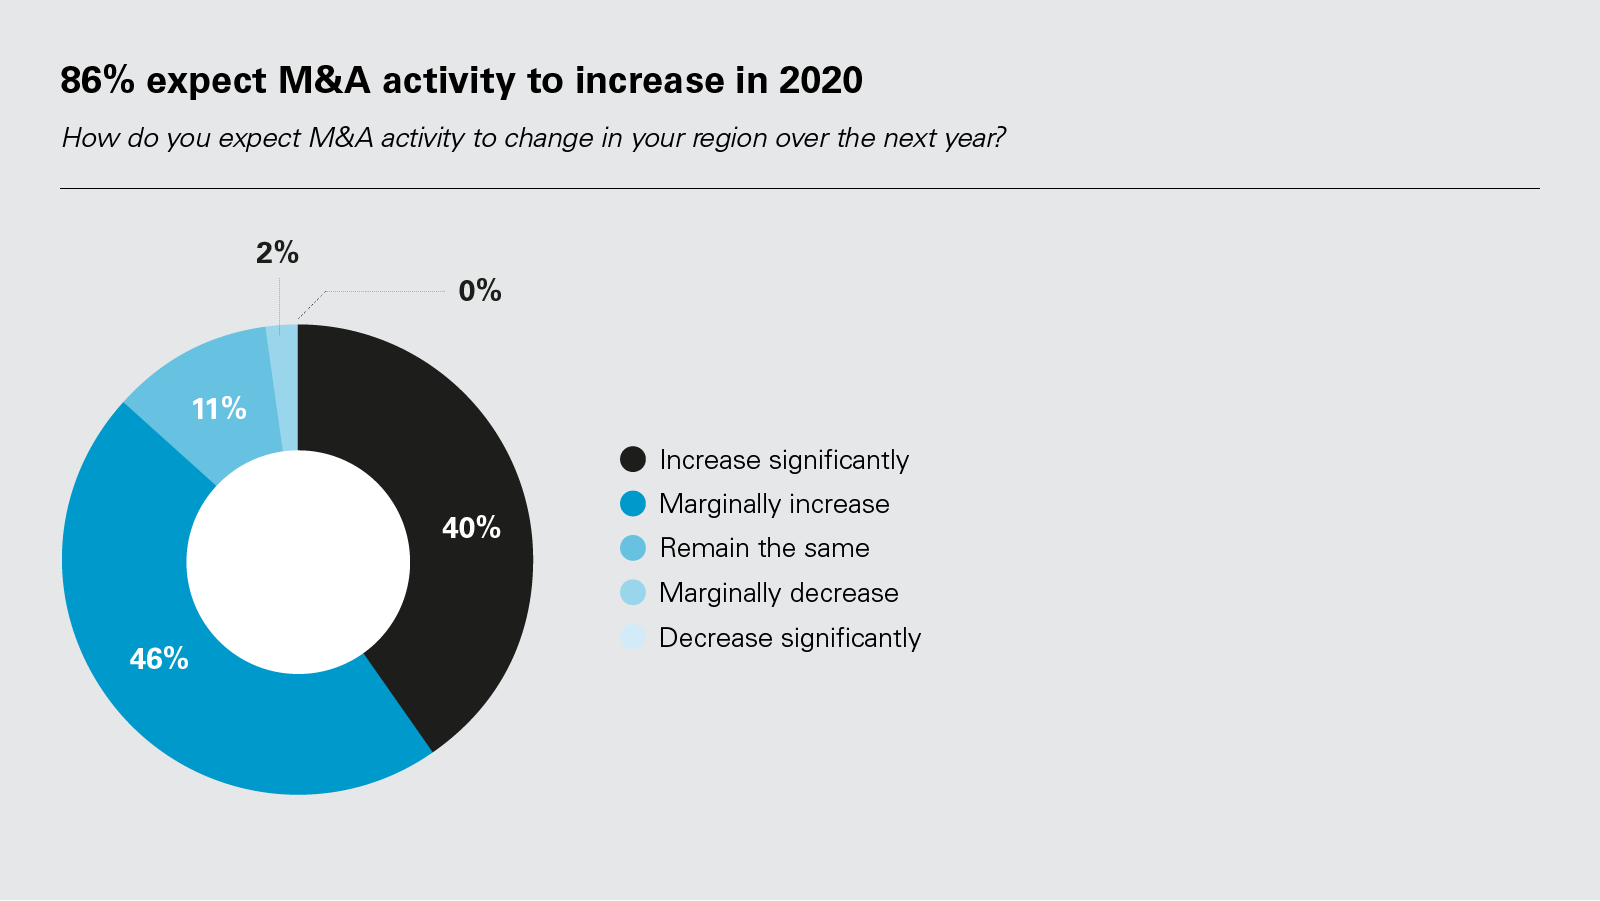 86% expect M&A activity to increase in 2020